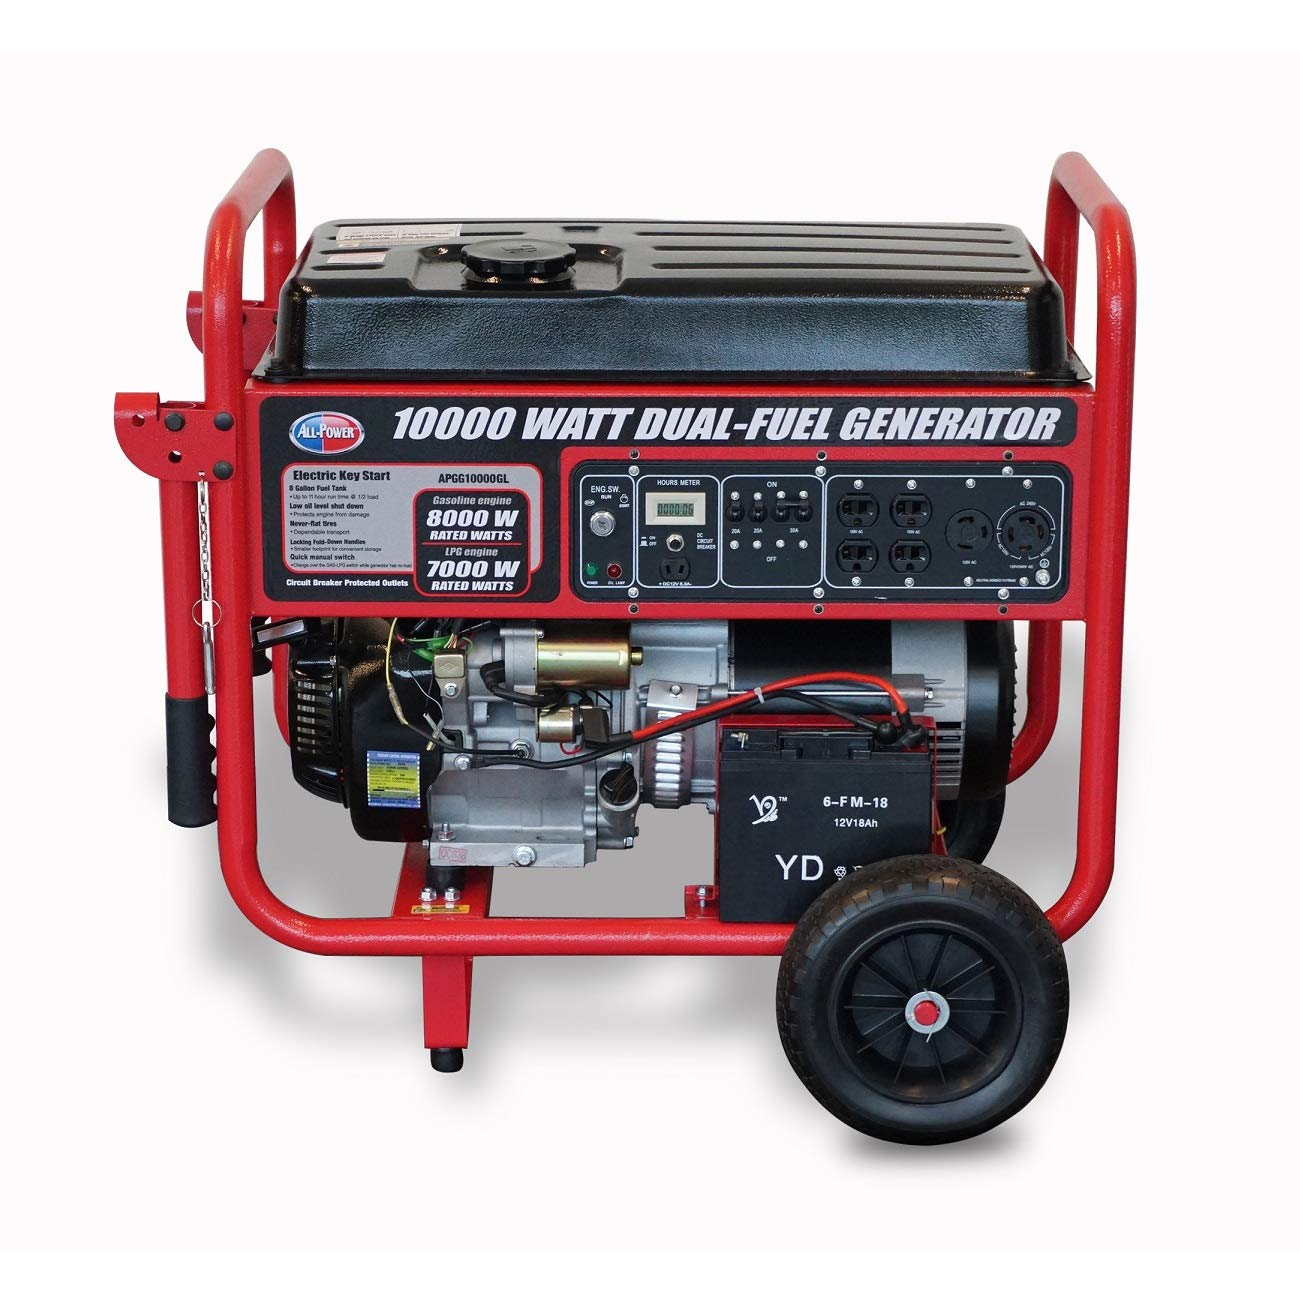 All Power America 10000 Watt Dual Fuel Generator W/ Electric Start, APGG10000GL 10000W Gas/Propane Portable Generator, Red/Black